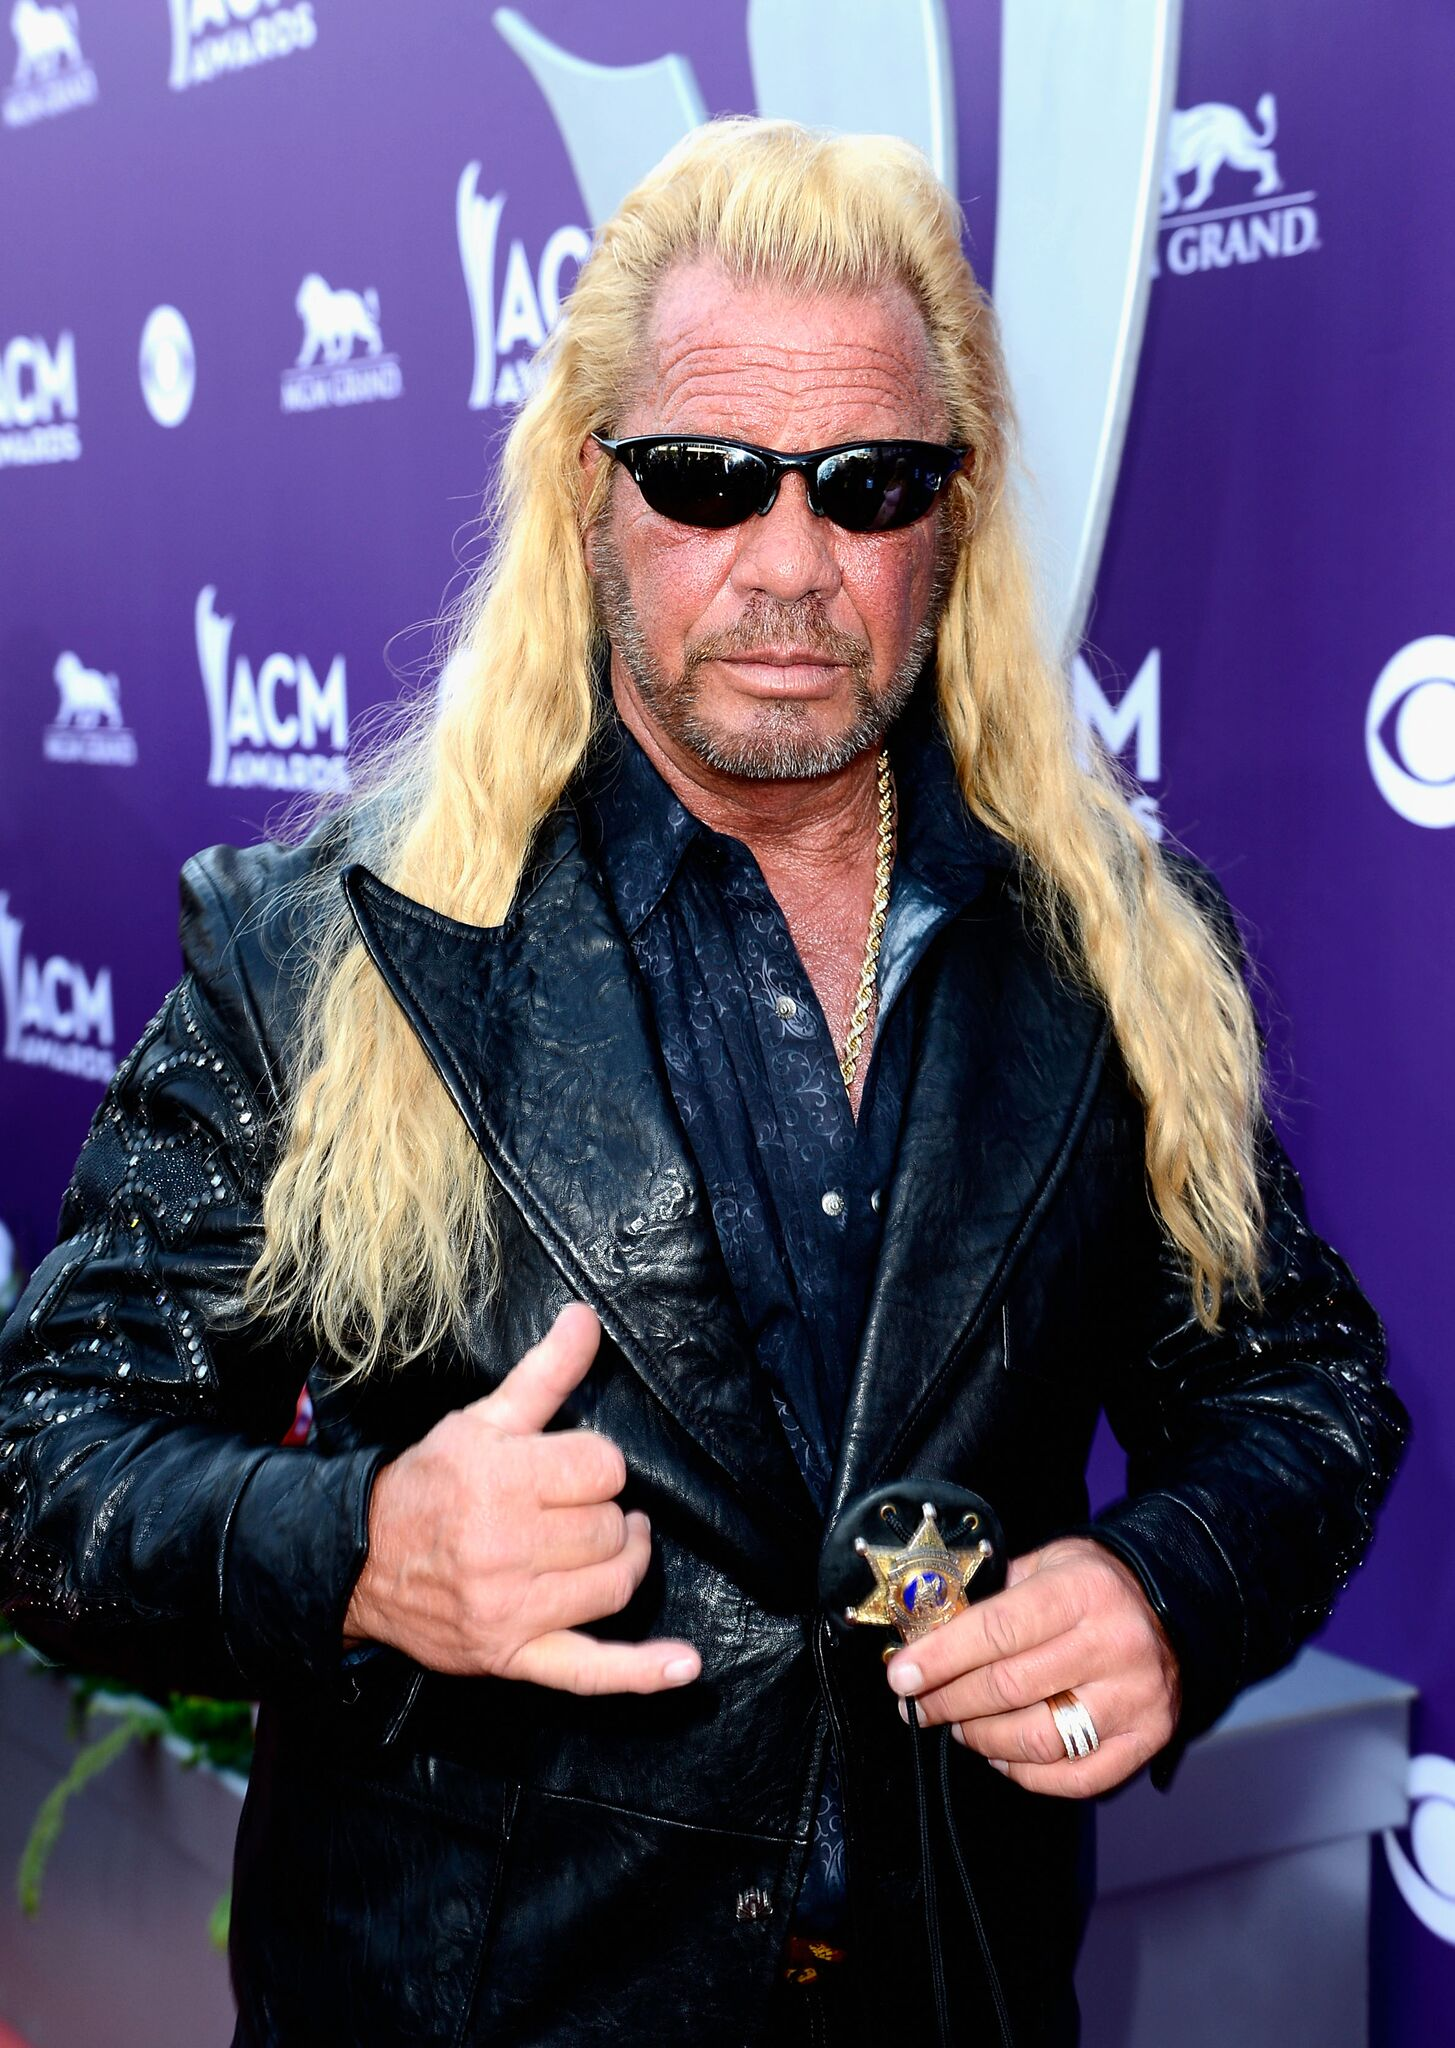 TV personality Dog the Bounty Hunter arrives at the 48th Annual Academy of Country Music Awards at the MGM Grand Garden Arena | Photo: Getty Images